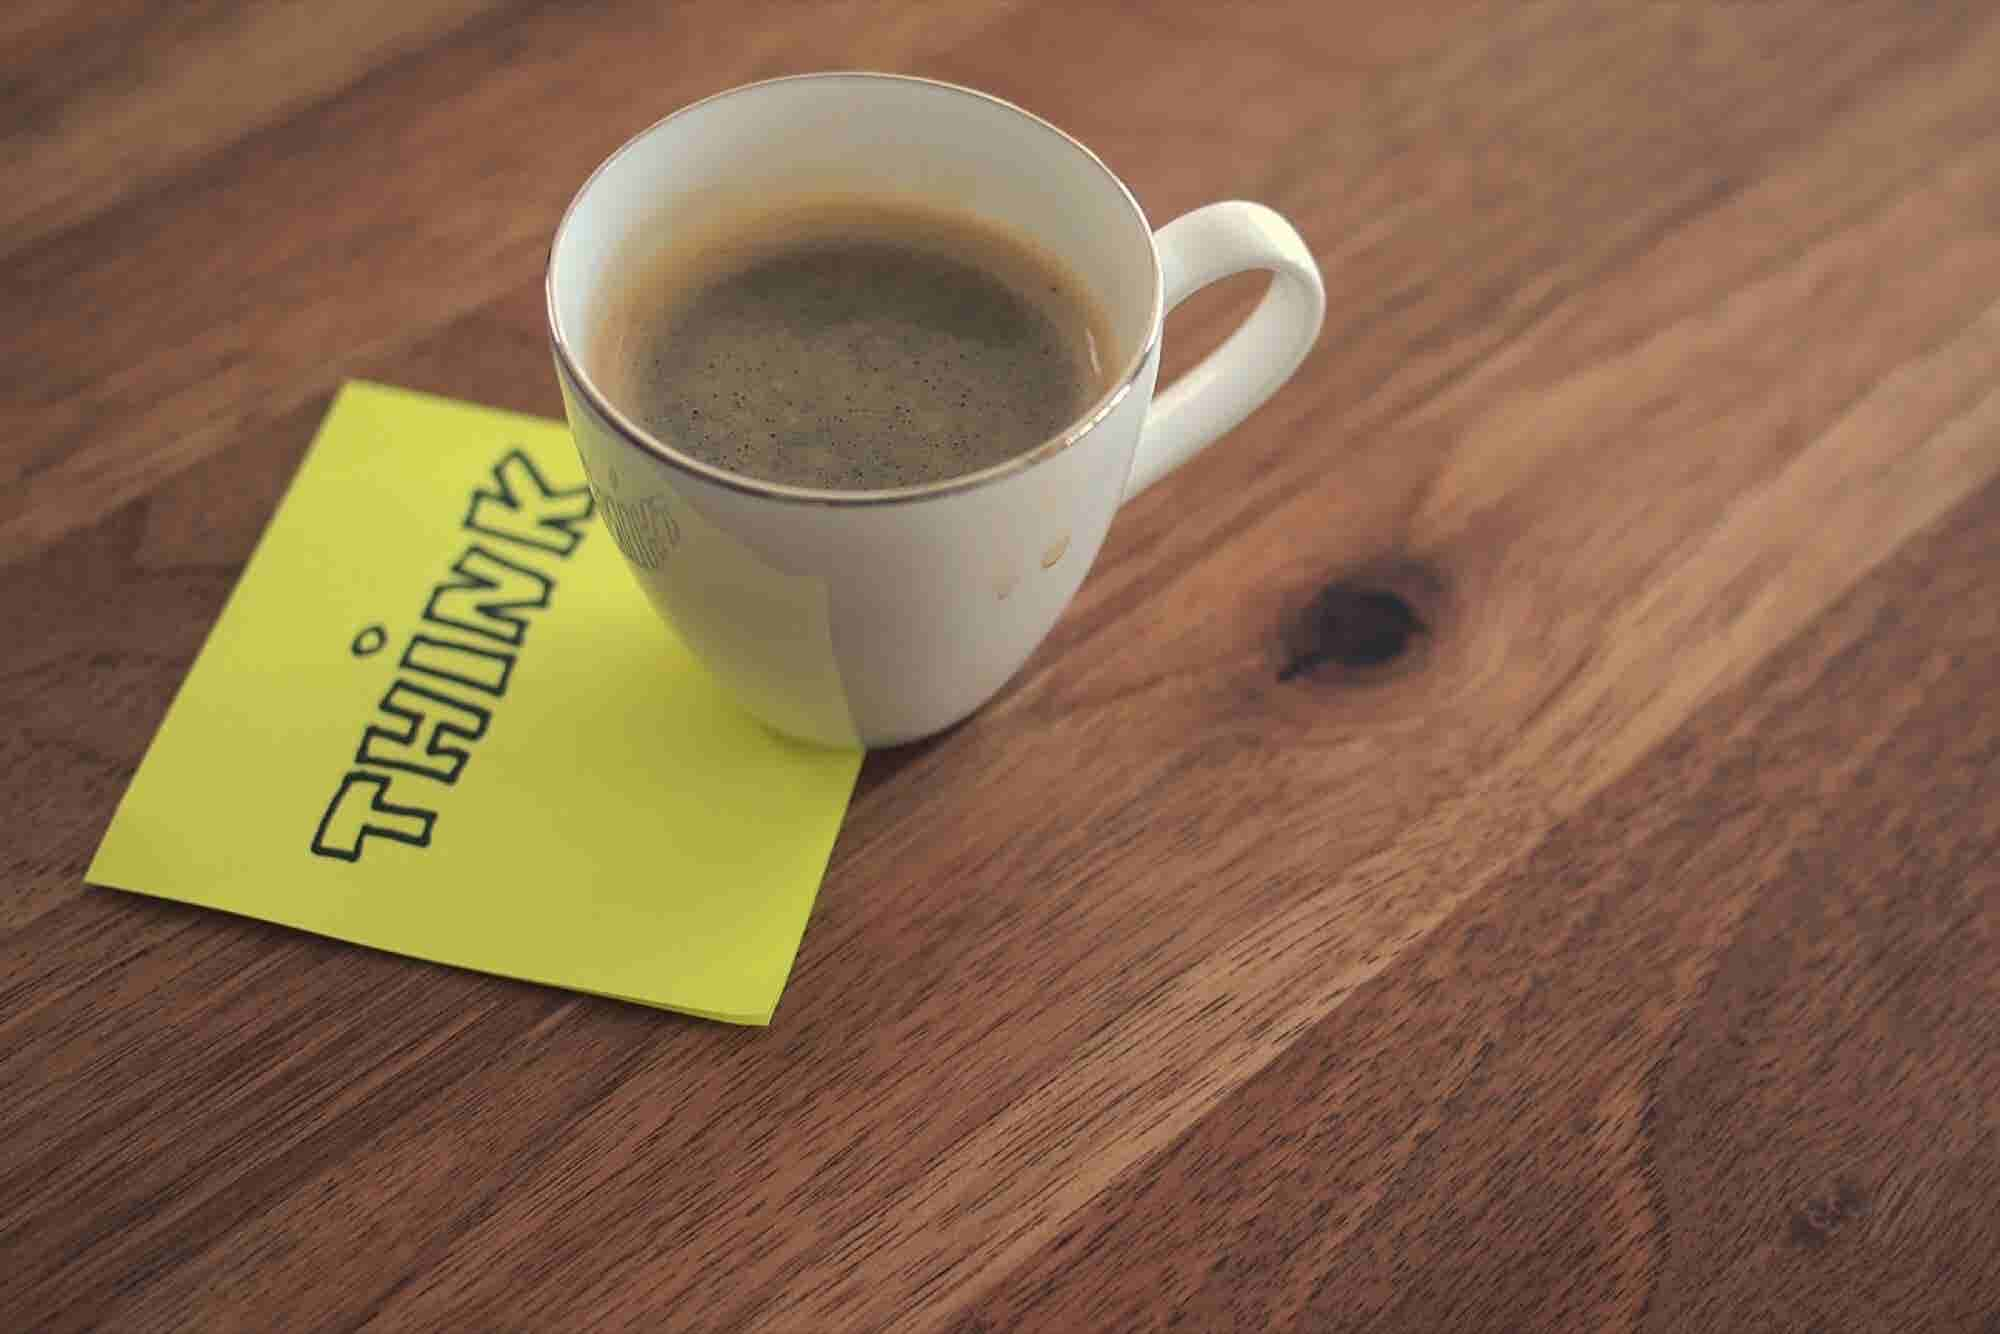 Why You Should Encourage Your Team to Take Even Decaf Coffee Breaks